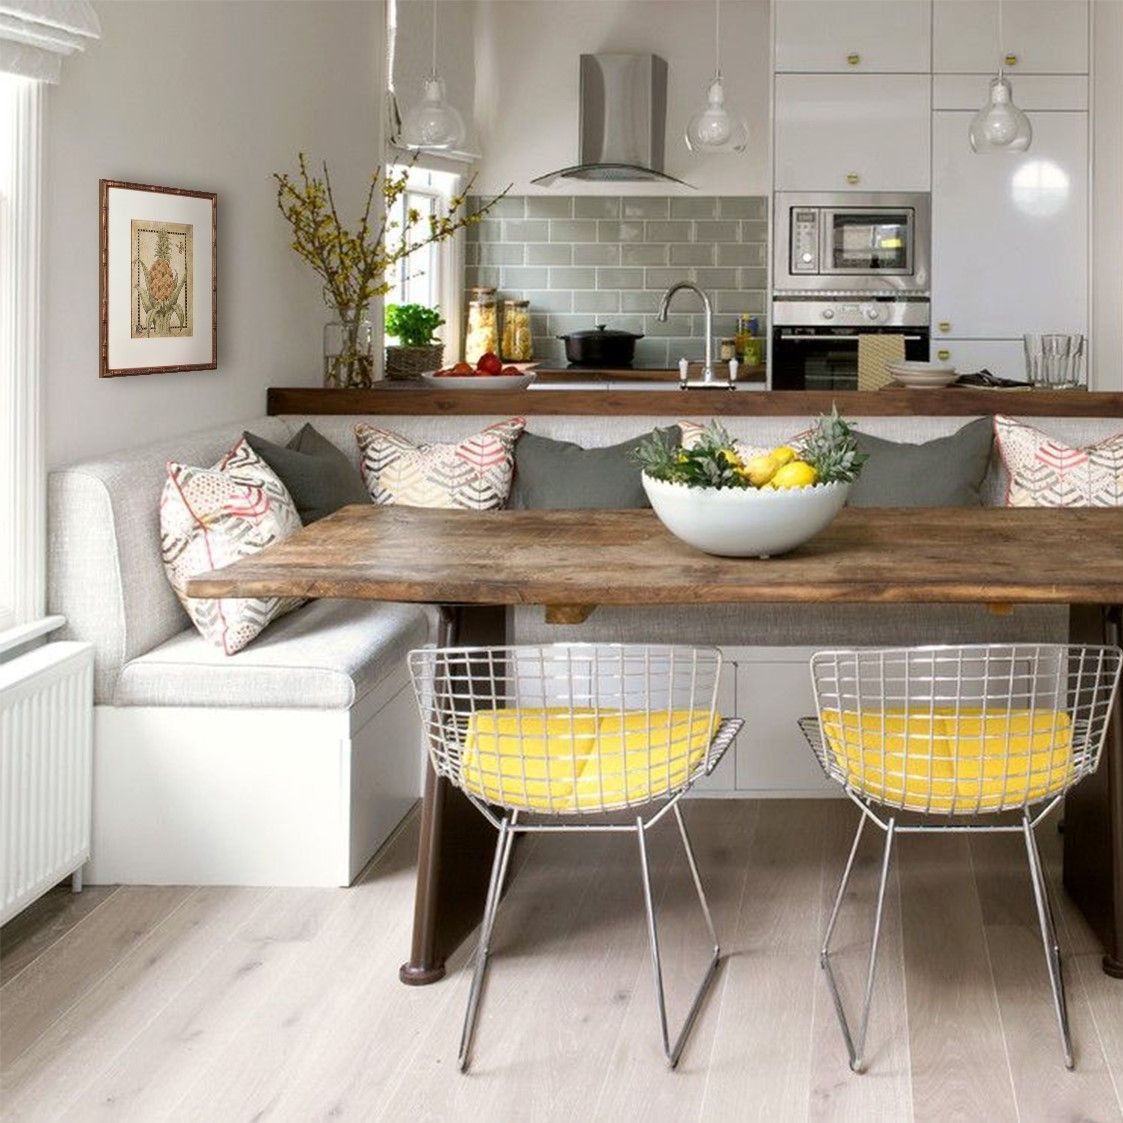 Rereleased For Their 20 Year Anniversary The Lovely Pineapple I Is Resplendent With That Inimi Dining Room Small Minimalist Dining Room Kitchen Design Small